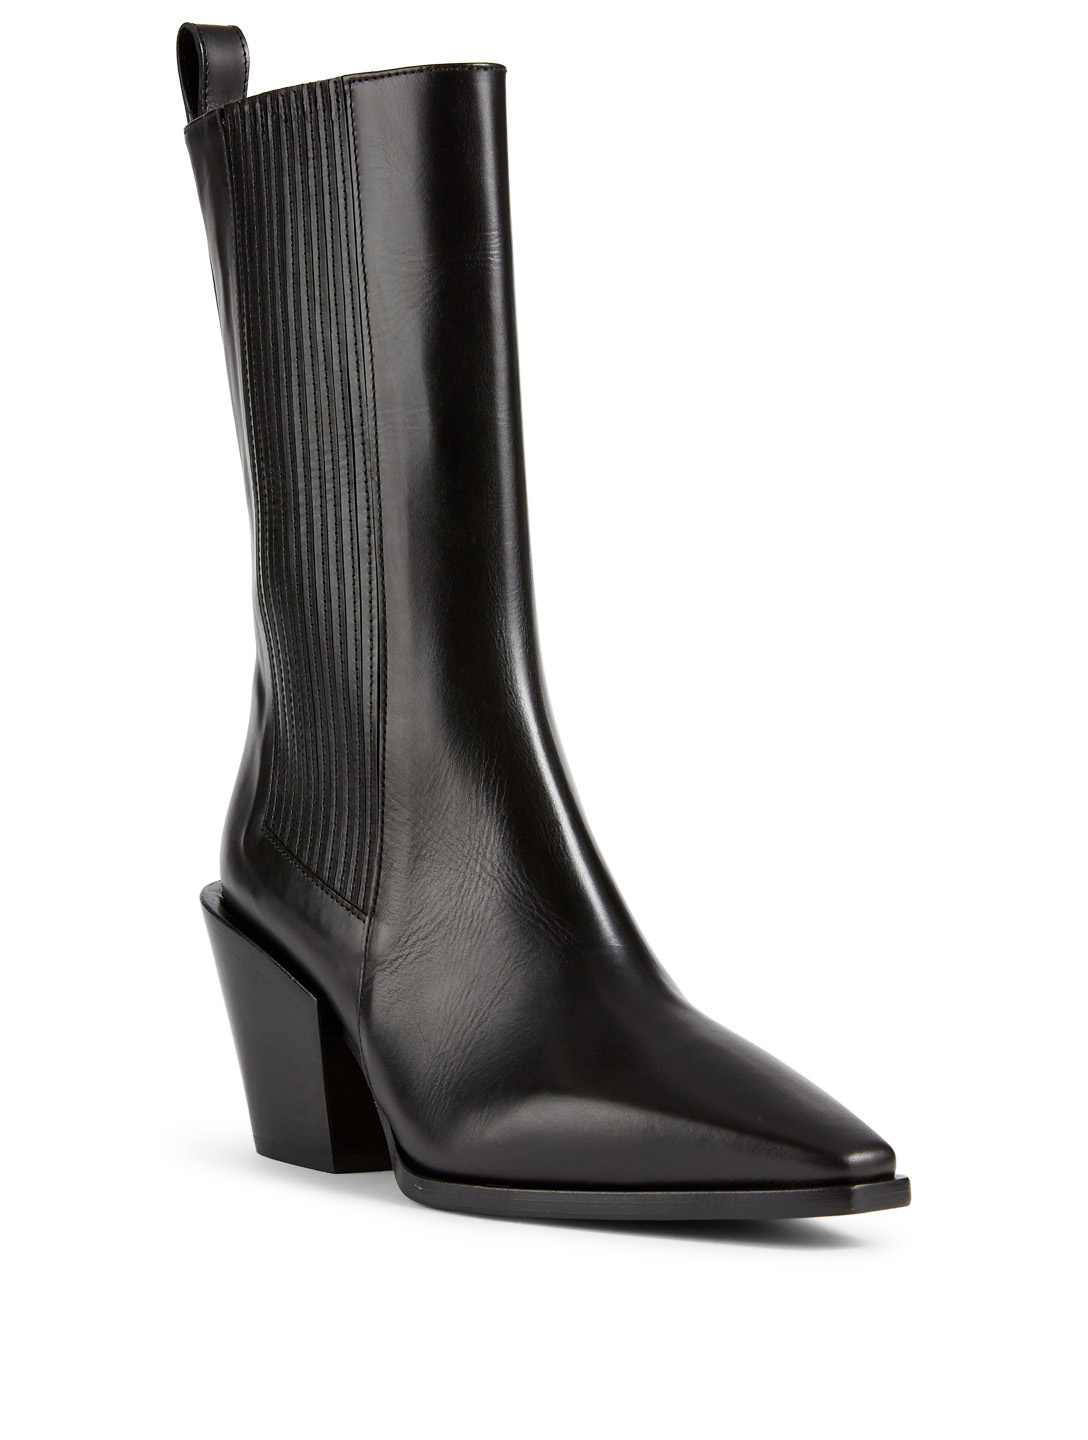 AEYDE Ari Leather Mid-Calf Boots Womens Black